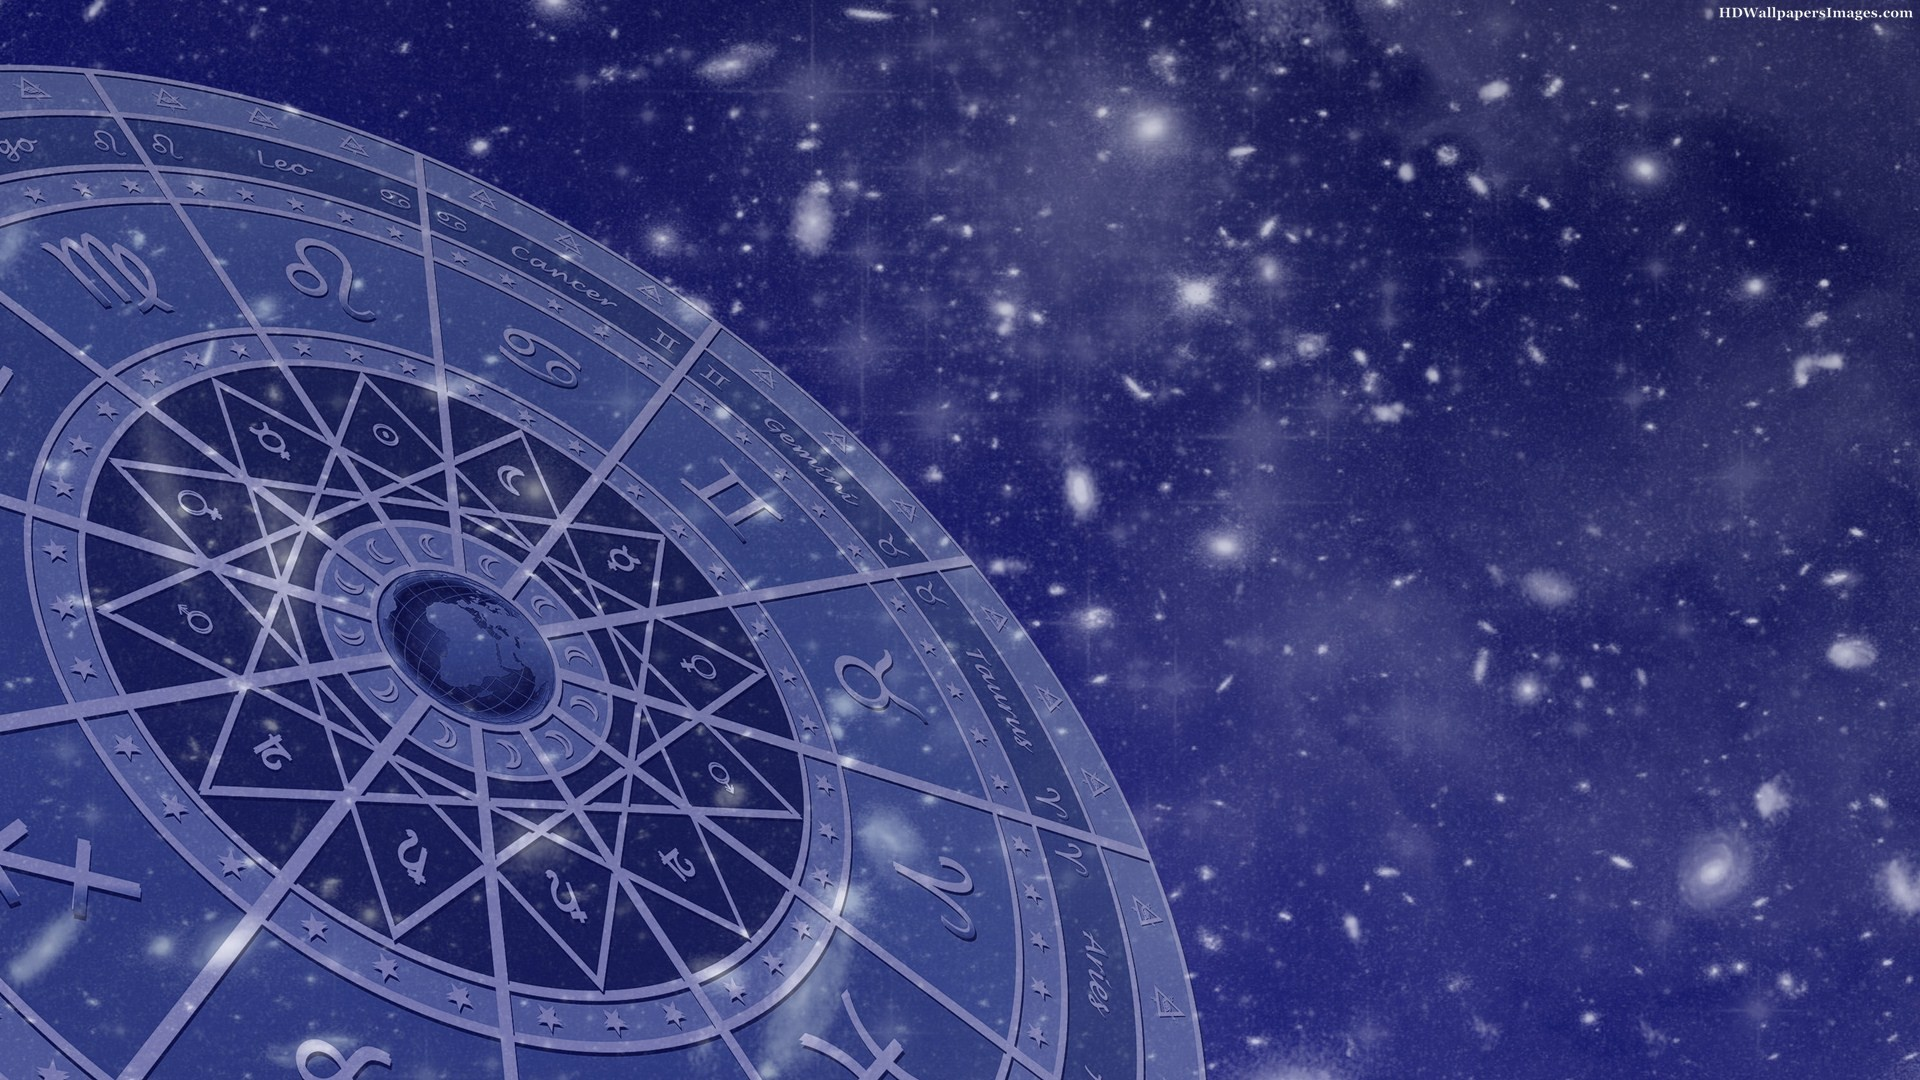 apni astrology wallpapers and - photo #12